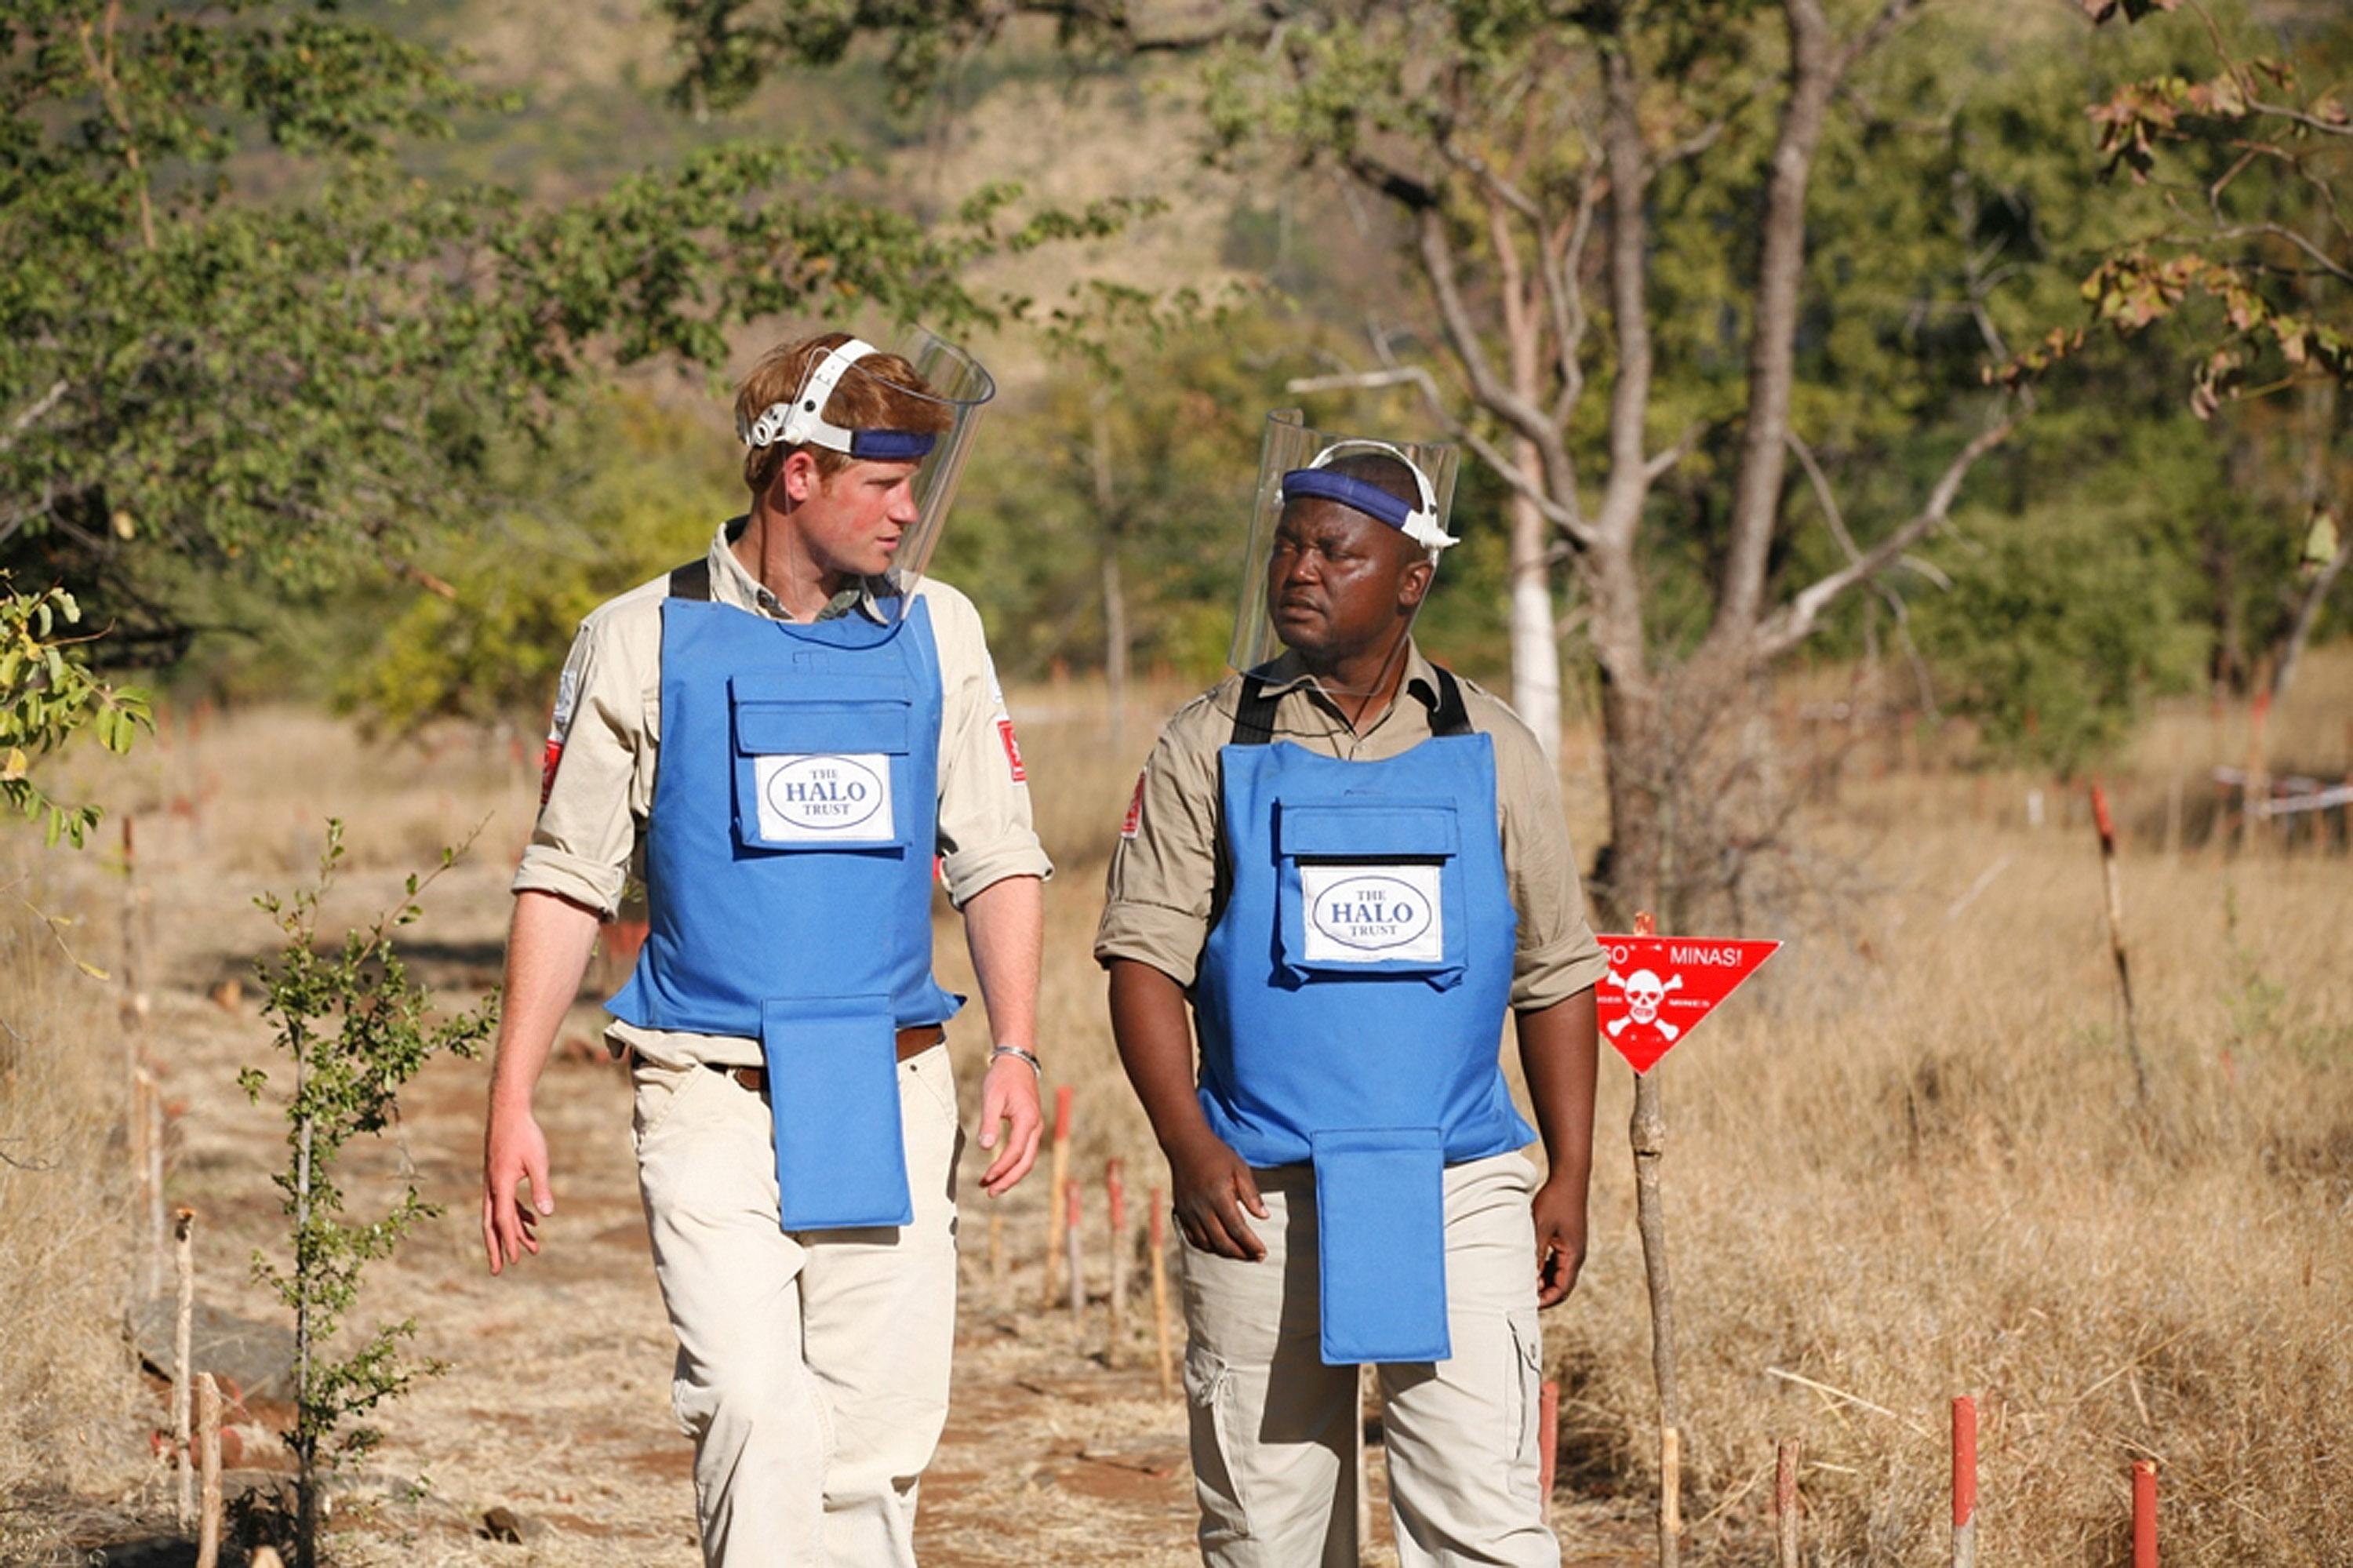 Prince Harry visits minefields cleared by The HALO Trust in Mozambique in June 2010 [Photo: Getty]